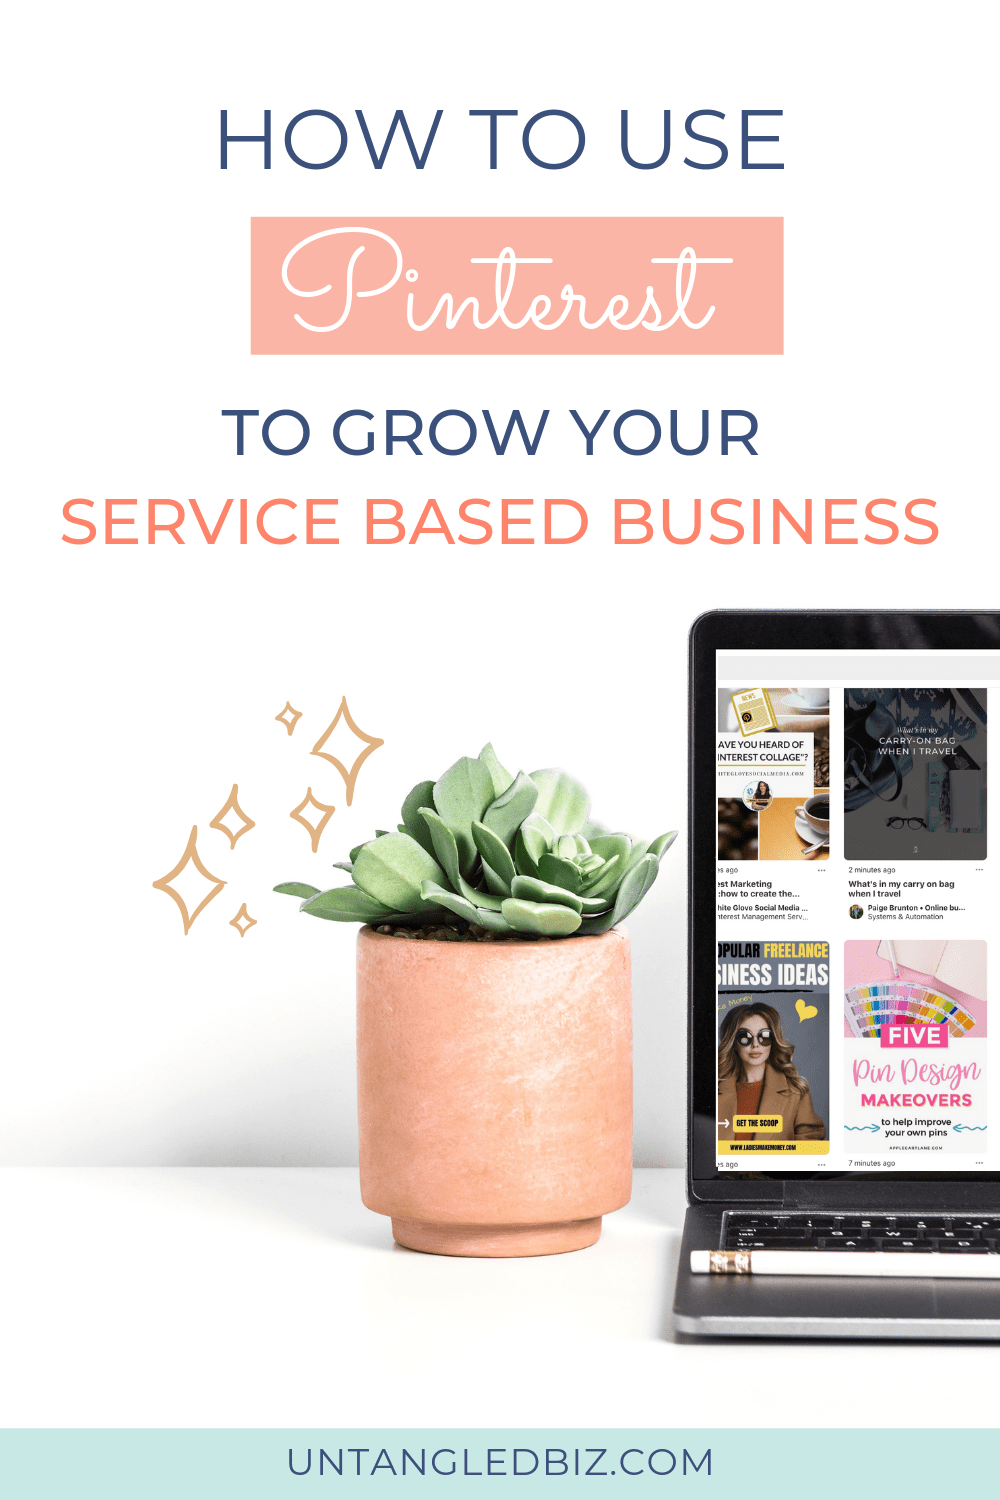 How to grow your service based business with Pinterest-Pinterest image